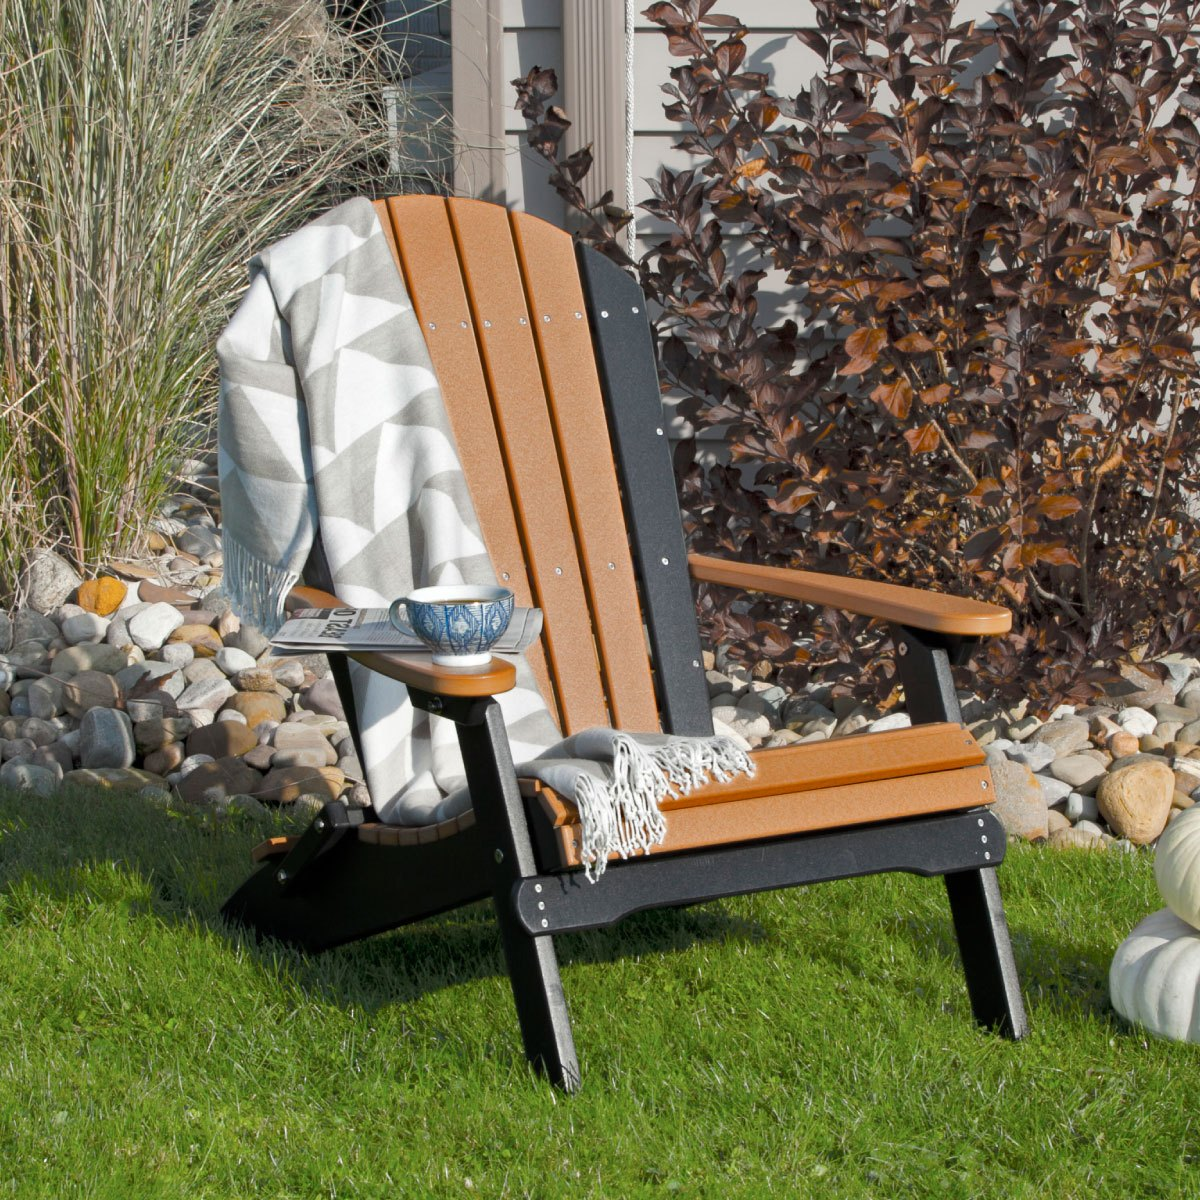 Recycled Patio Luxury Recycled Plastic Patio Furniture